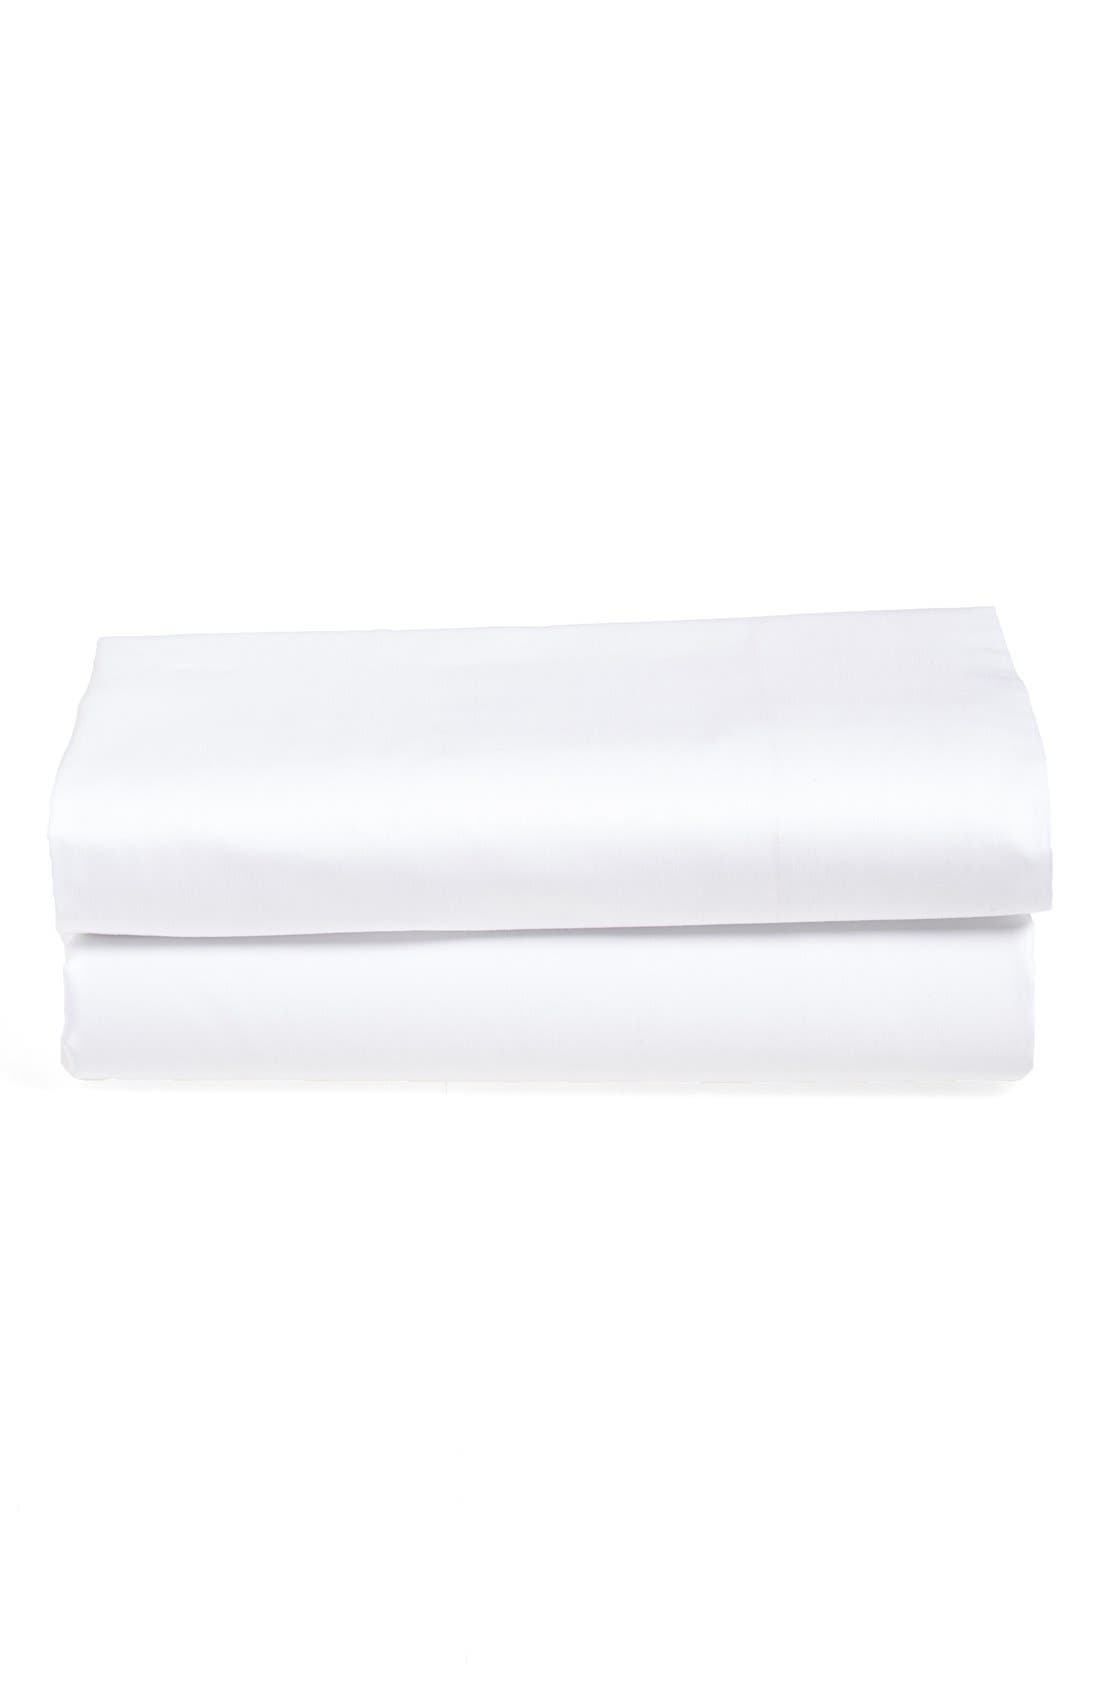 'Ultra Luxe' 600 Thread Count Fitted Sheet,                         Main,                         color, White